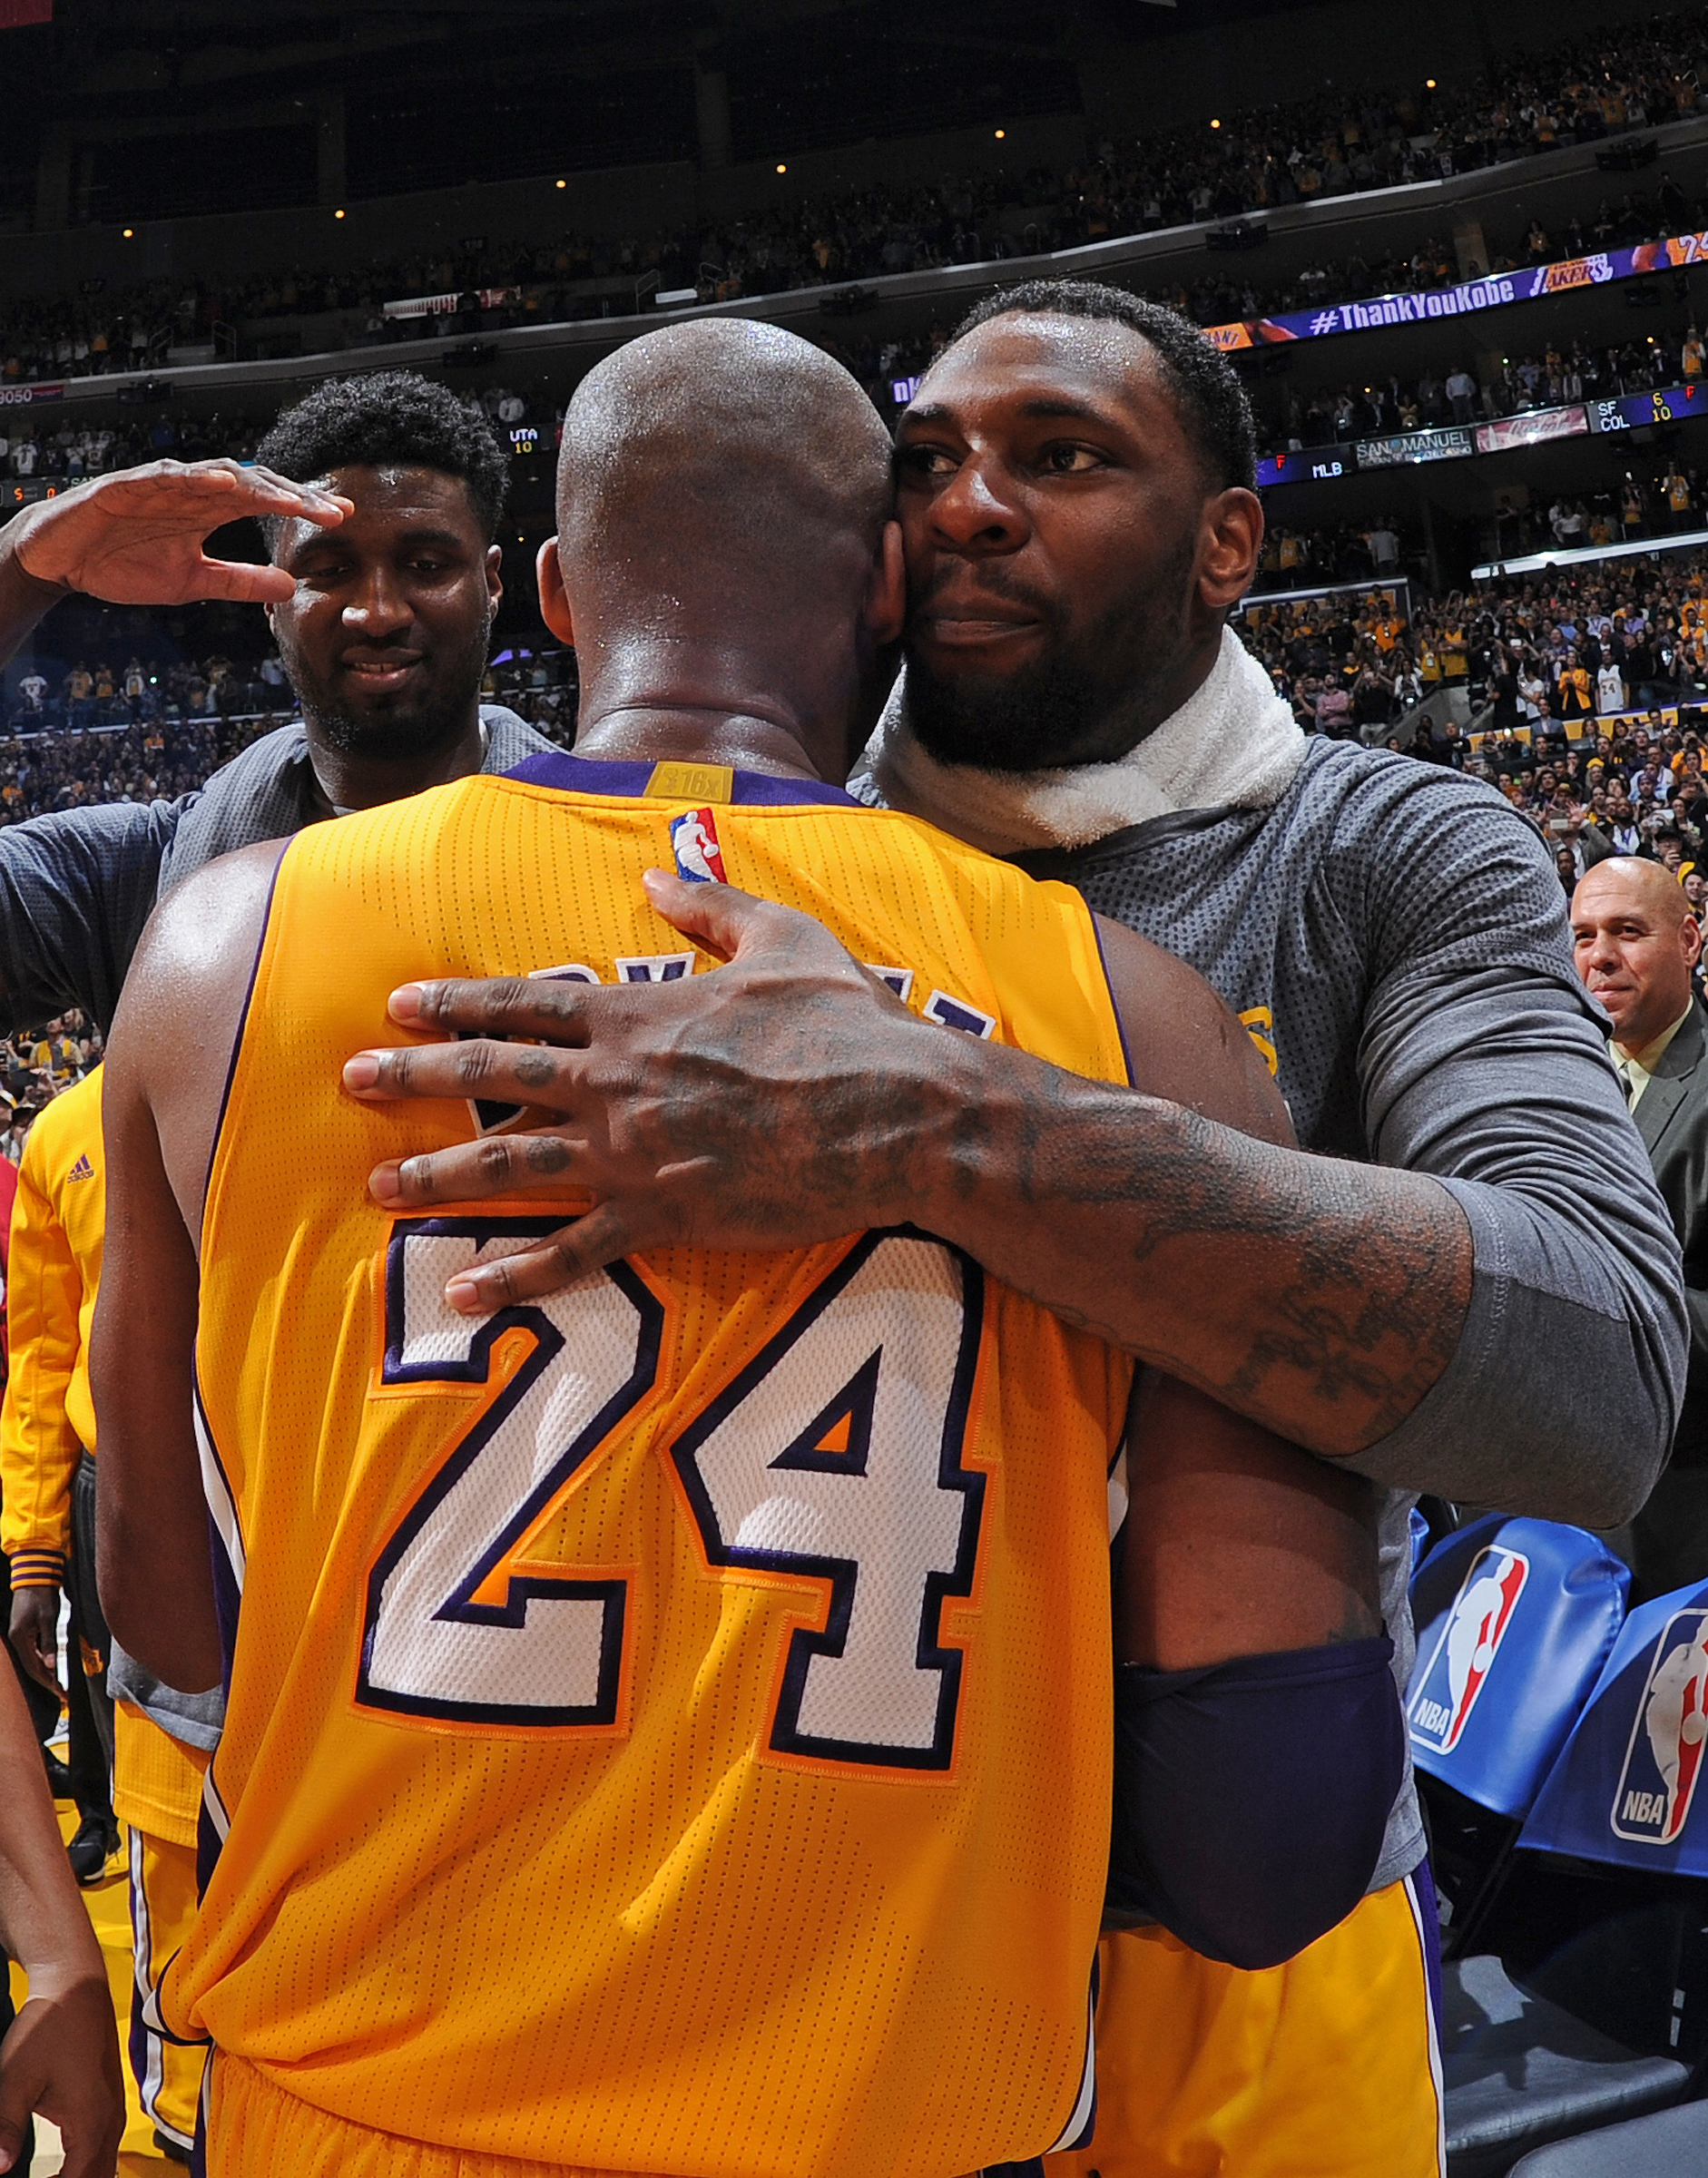 Kobe Bryant #24 and Tarik Black #28 of the Los Angeles Lakers hug after the game against the Utah Jazz at STAPLES Center on April 13, 2016 in Los Angeles, California.